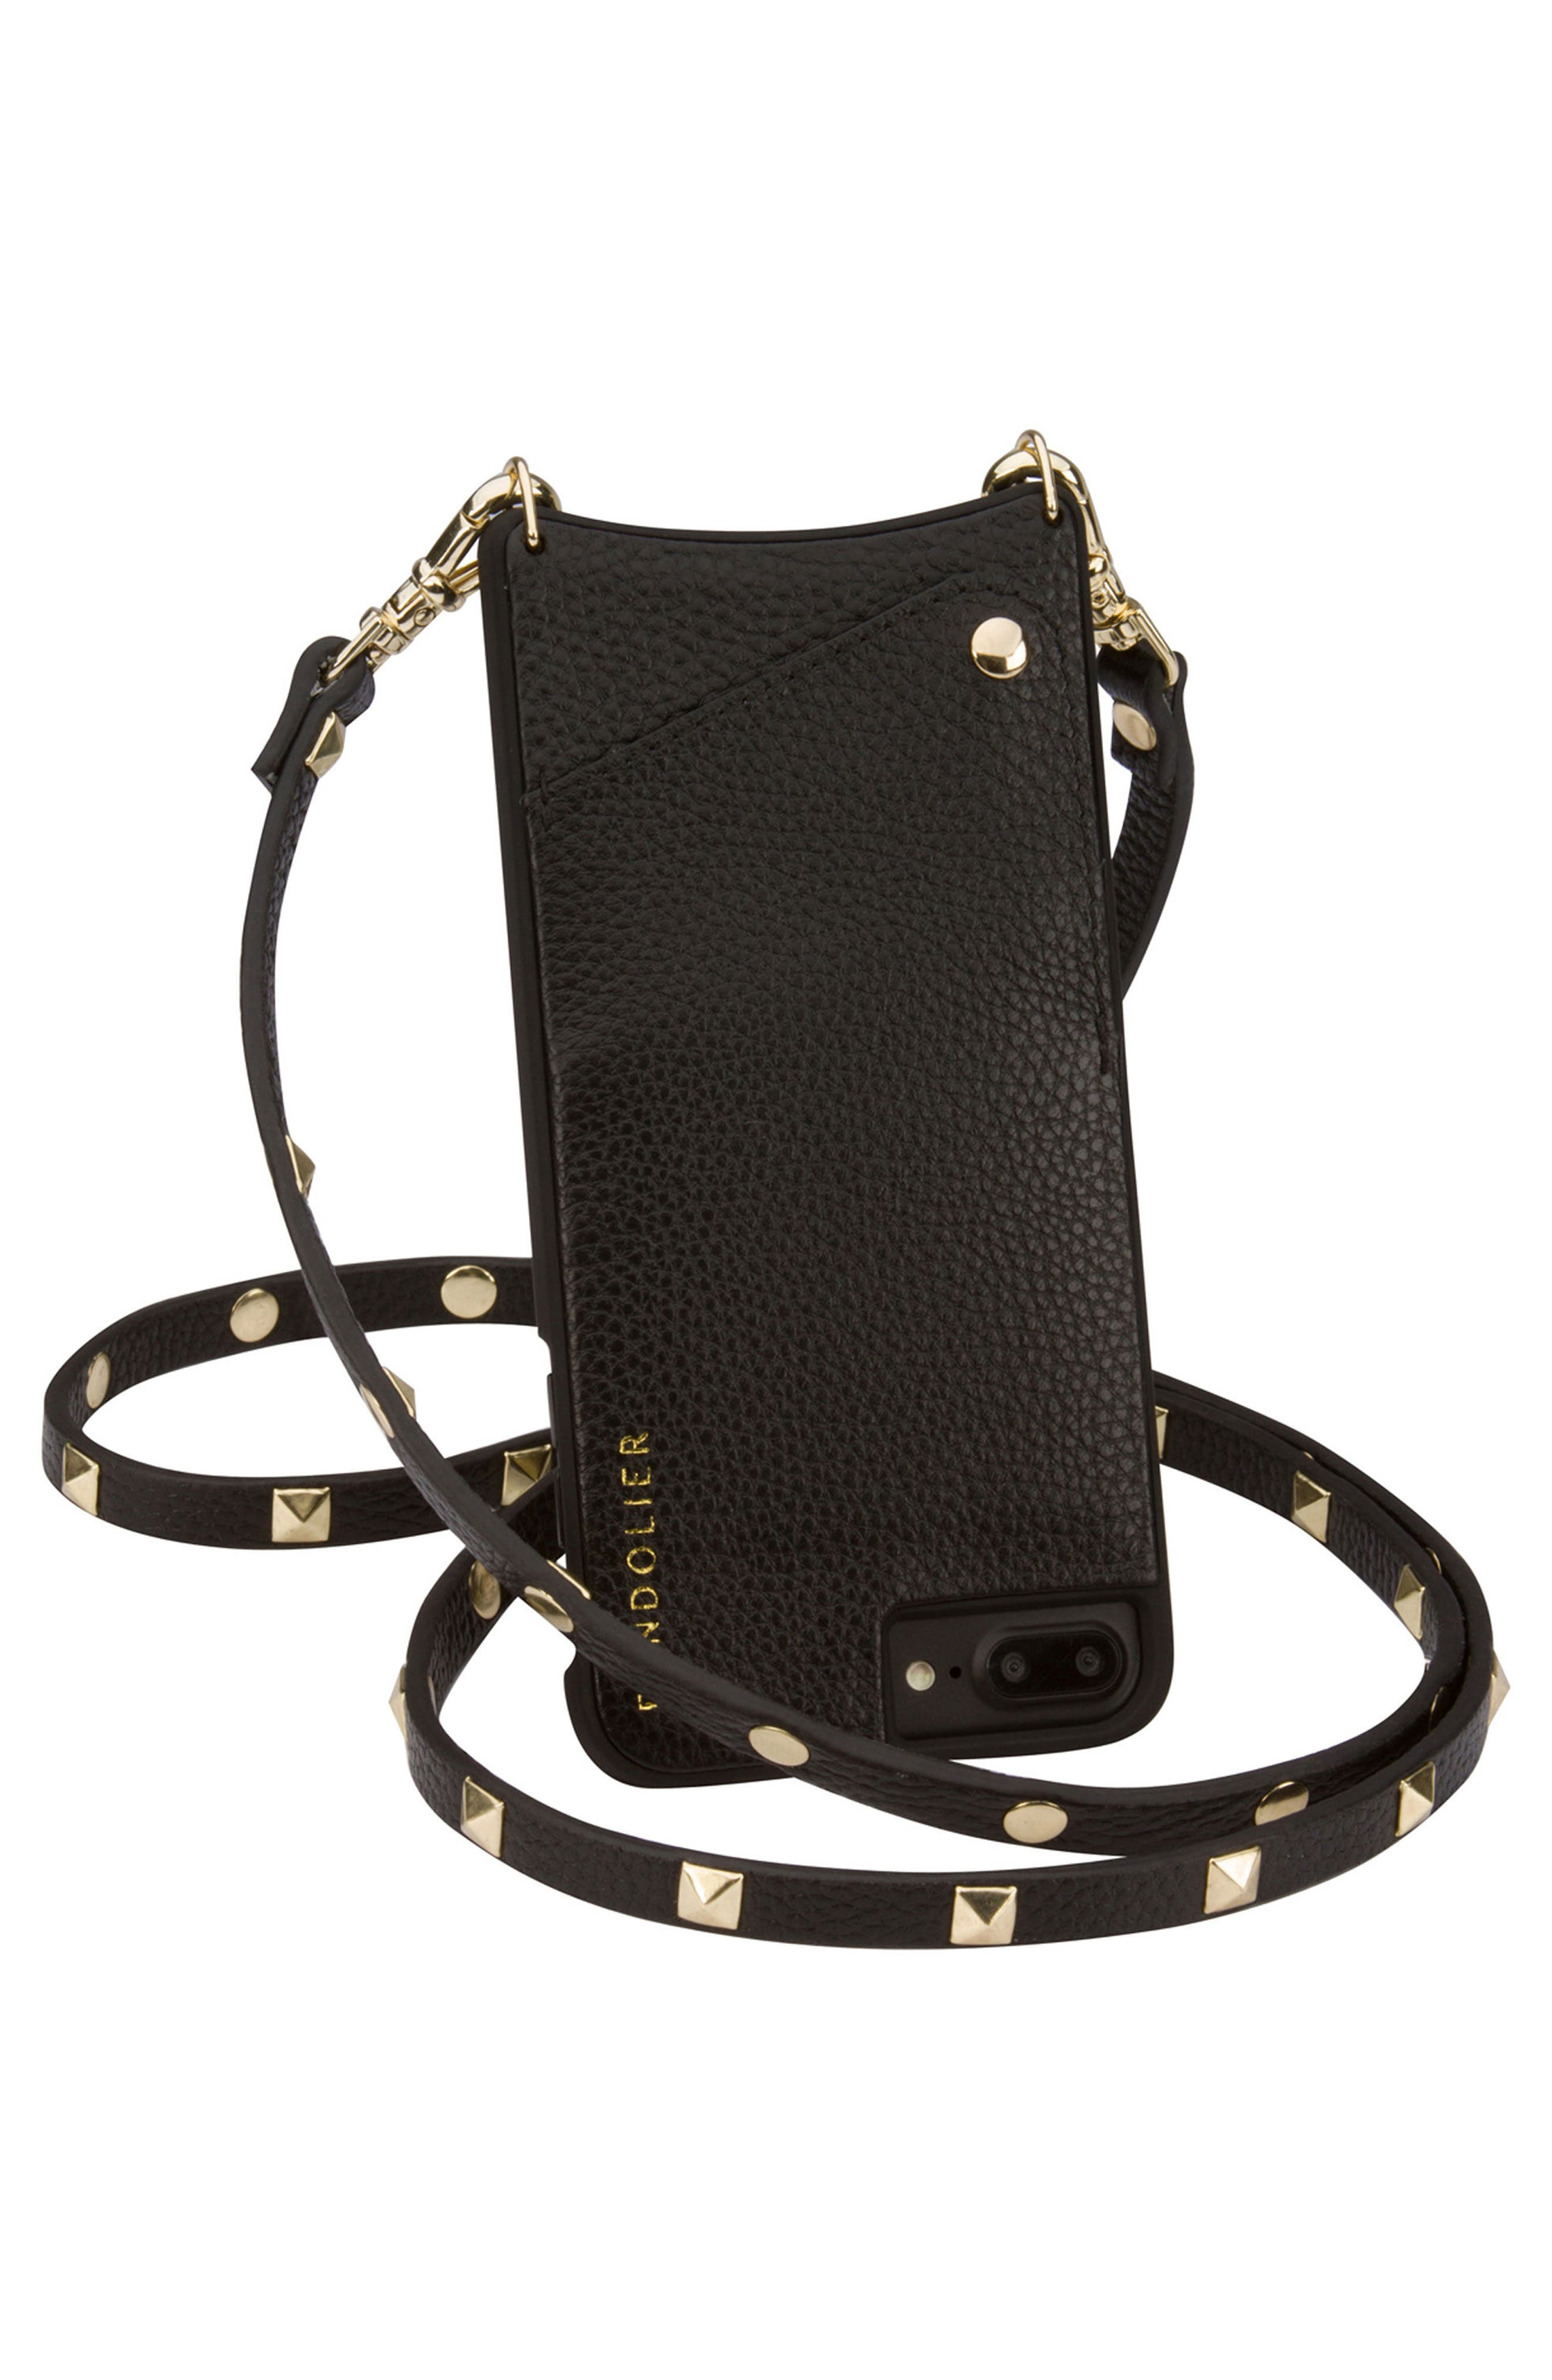 Sarah Leather iPhone 6/7/8 & 6/7/8 Plus Crossbody Case,                             Alternate thumbnail 3, color,                             NEW BLACK/ GOLD